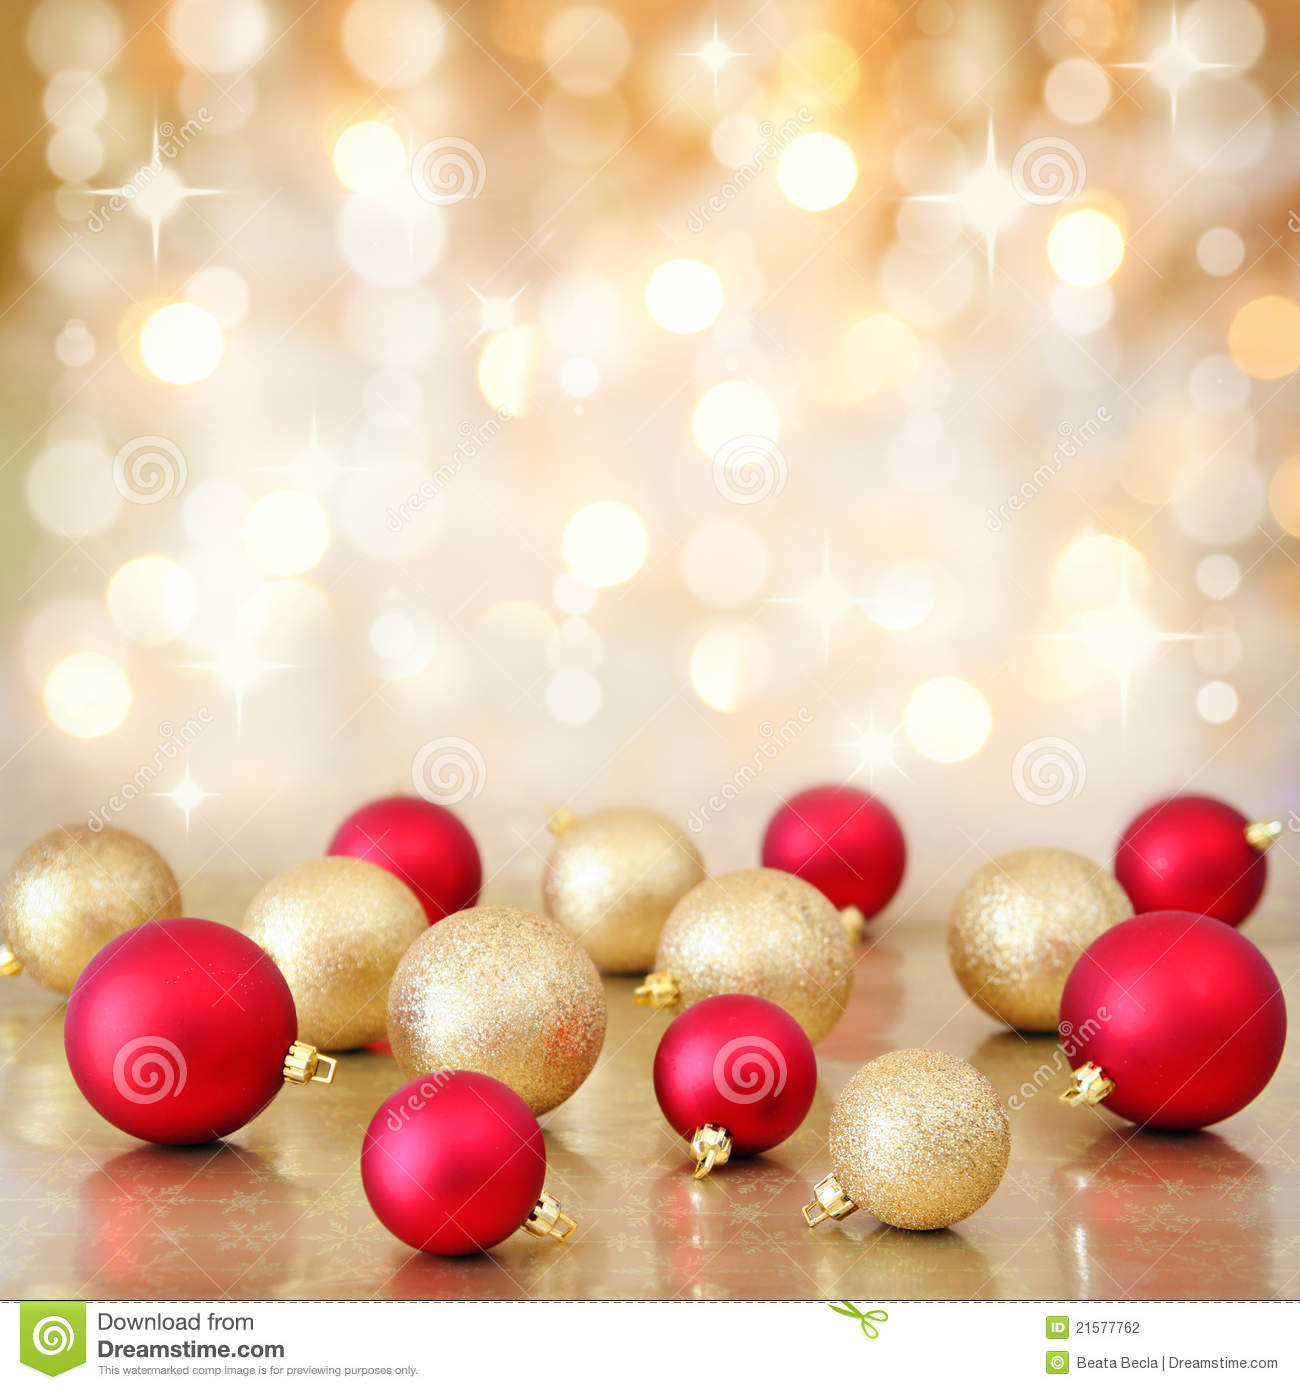 Silver and golden background of defocused abstract lights bokeh - Christmas Baubles On Defocused Lights Background Stock